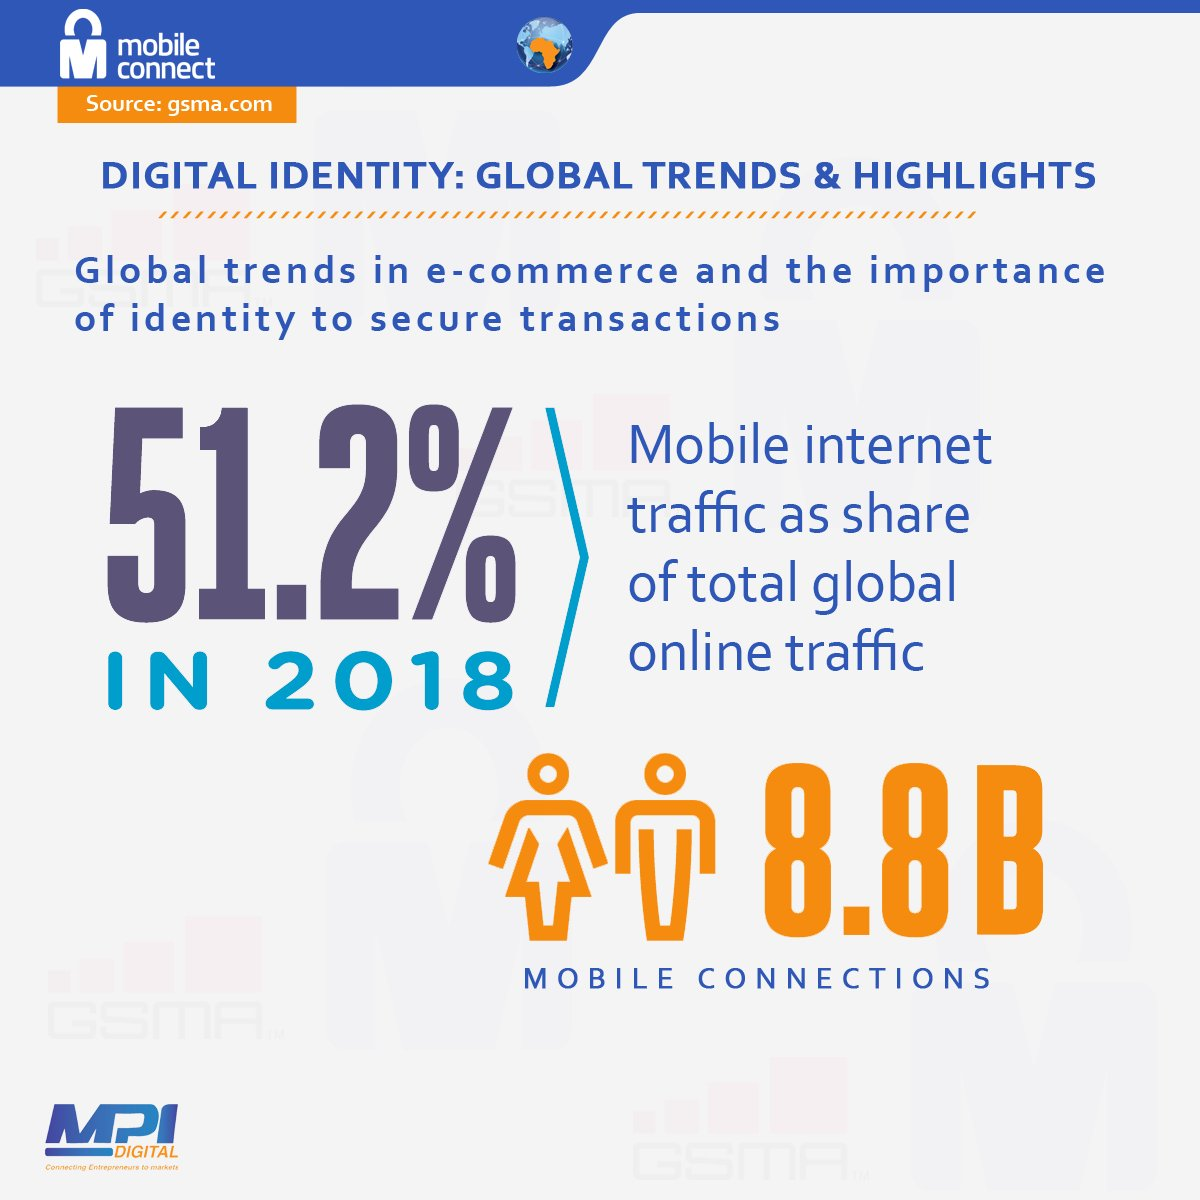 A PIN or biometric scan is entered in response to a oneoff prompt from the desired service, allowing users to authorize payments quickly and securely, without the need to share their telephone number. @mobileconnect @GSMA @GSMAMobileMoney @GSMAi @MTNza @SafaricomPLC #MPIDigital <br>http://pic.twitter.com/nex2OkvmSV